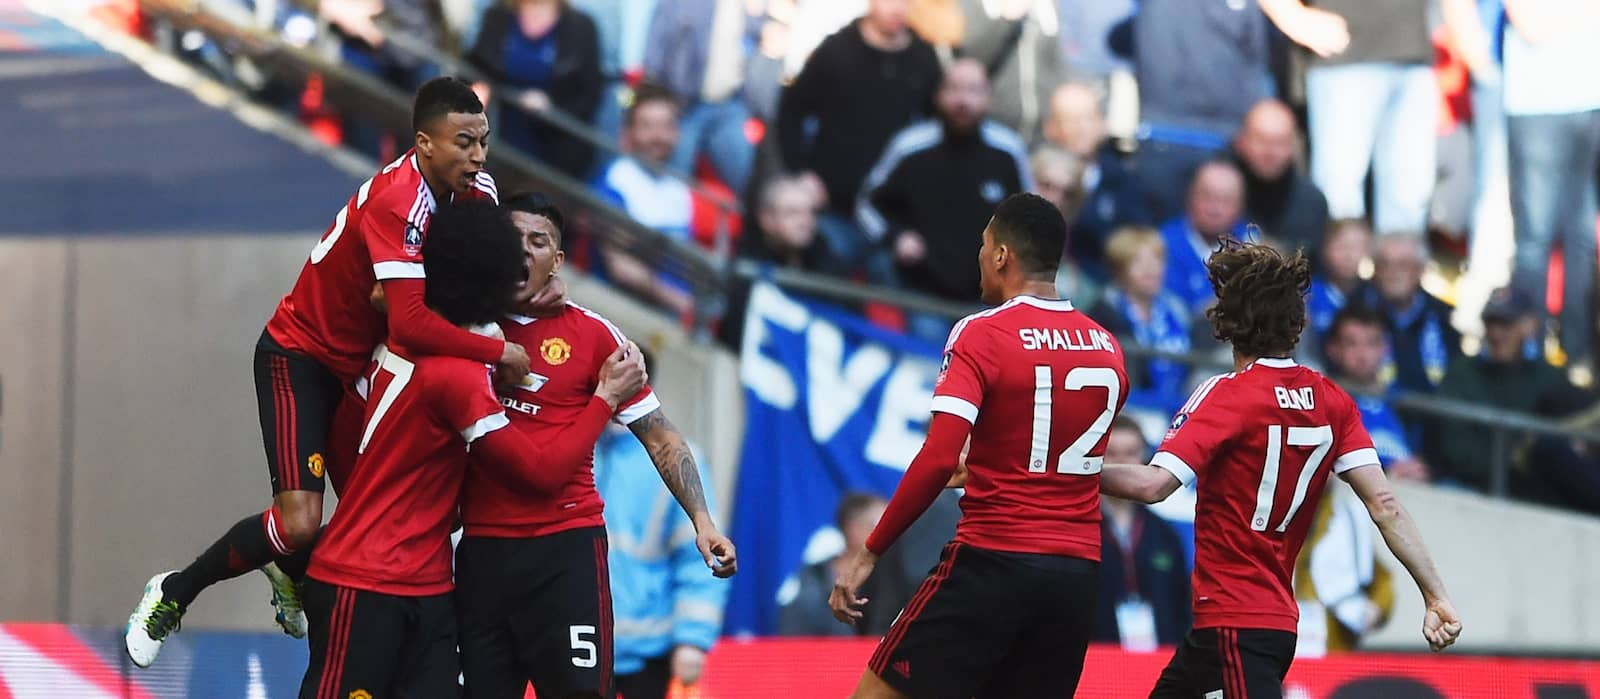 Manchester United players revel in FA Cup semi-final win over Everton